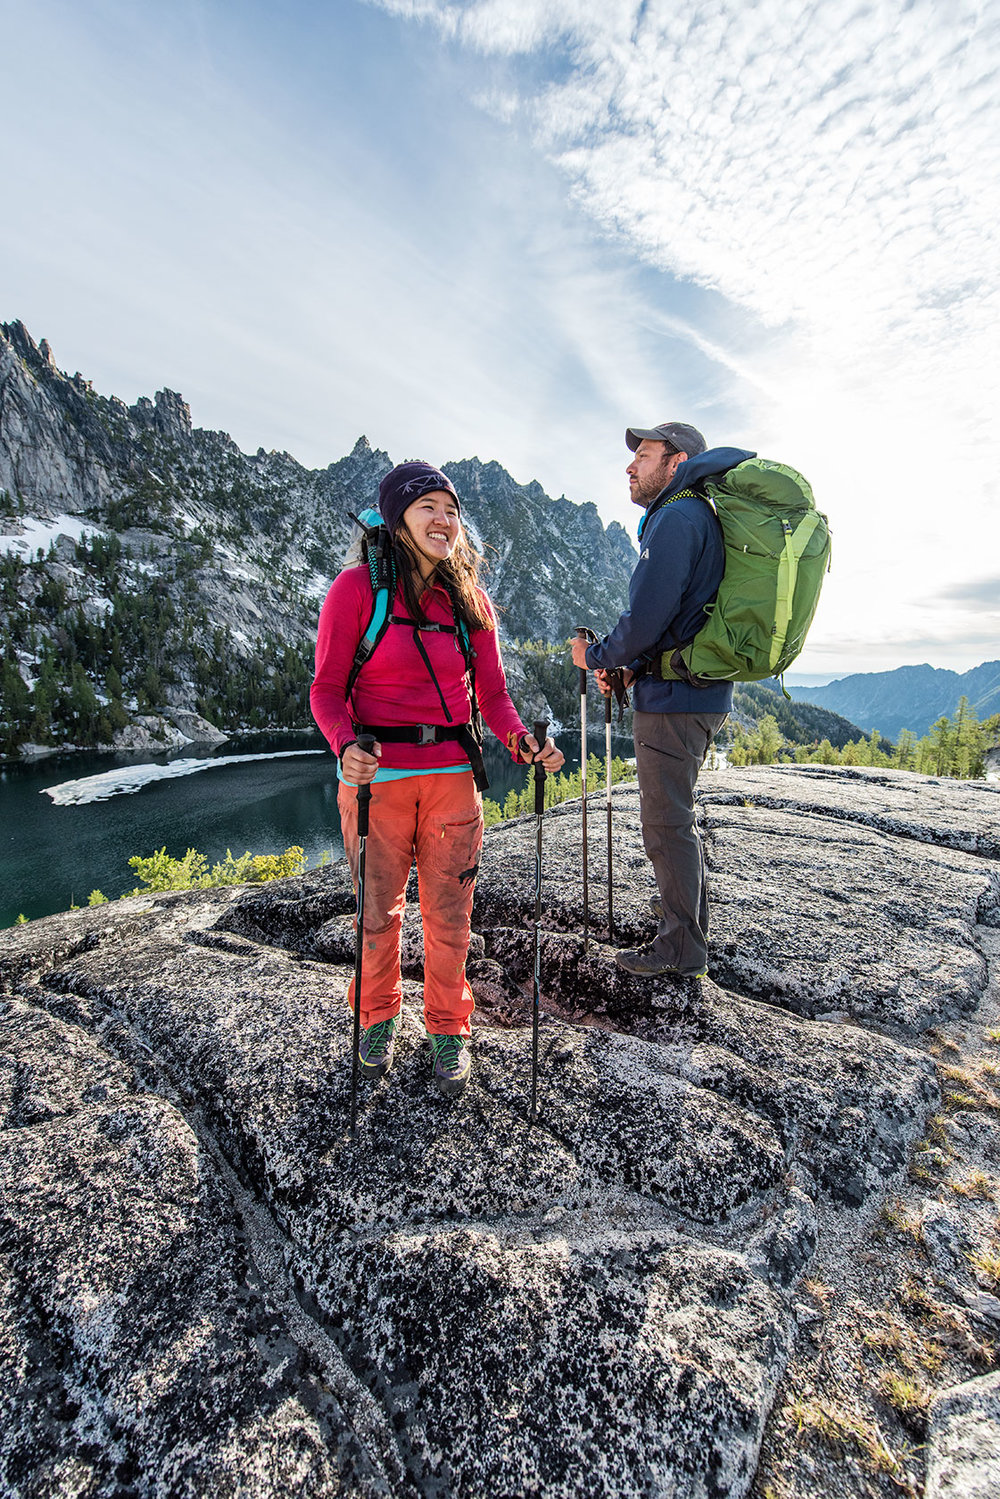 austin-trigg-osprey-hiking-backpacks-hike-camp-washington-adventure-morning-sunrise-lifestyle-outdoor-enchantments-alpine-lake-wilderness-laugh.jpg